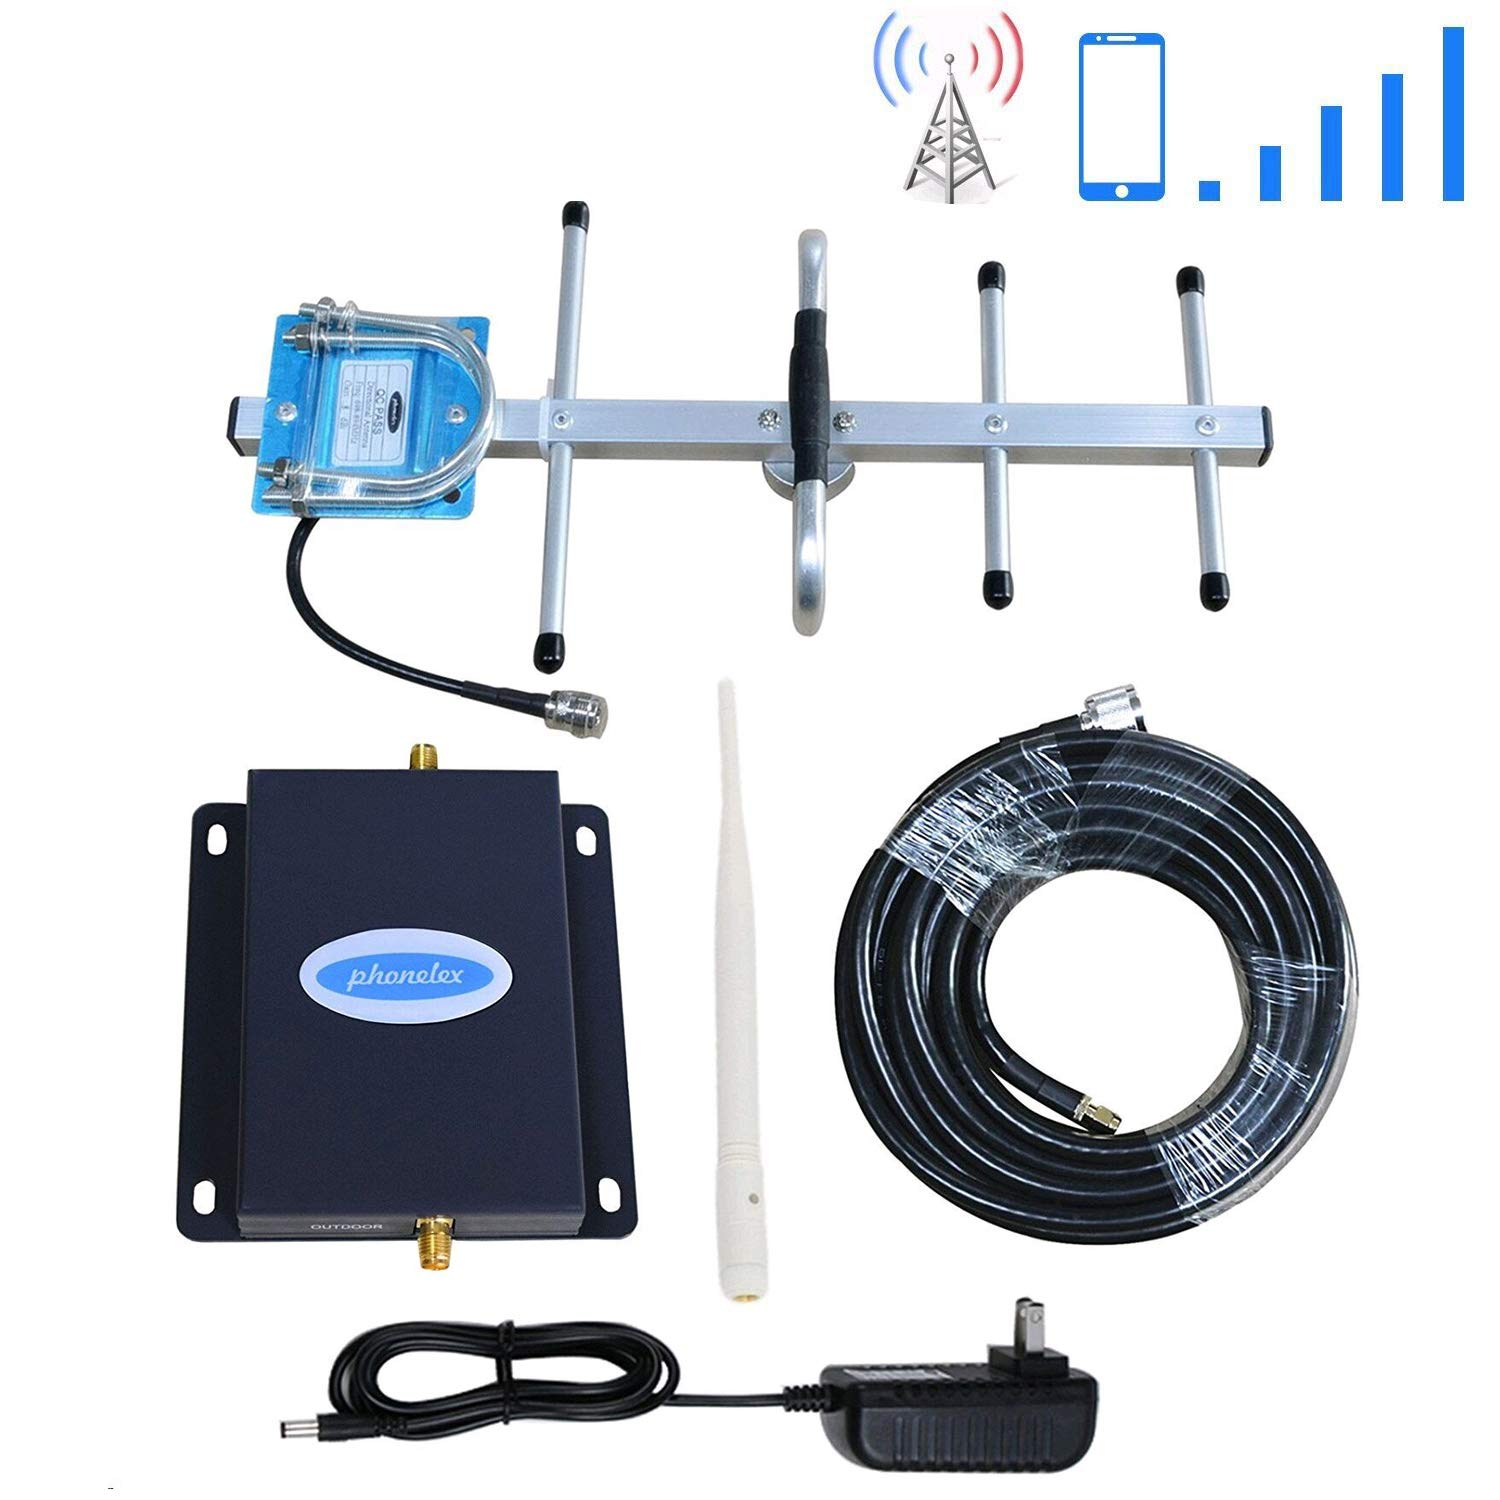 b72c0b0aa653d7 Phonelex Cell Phone Signal Booster AT&T T-Mobile 4G LTE Cell Phone Booster  Amplifier Repeater 700Mhz Band12/17 Mobile Signal Booster Indoor  Whip/Outdoor ...